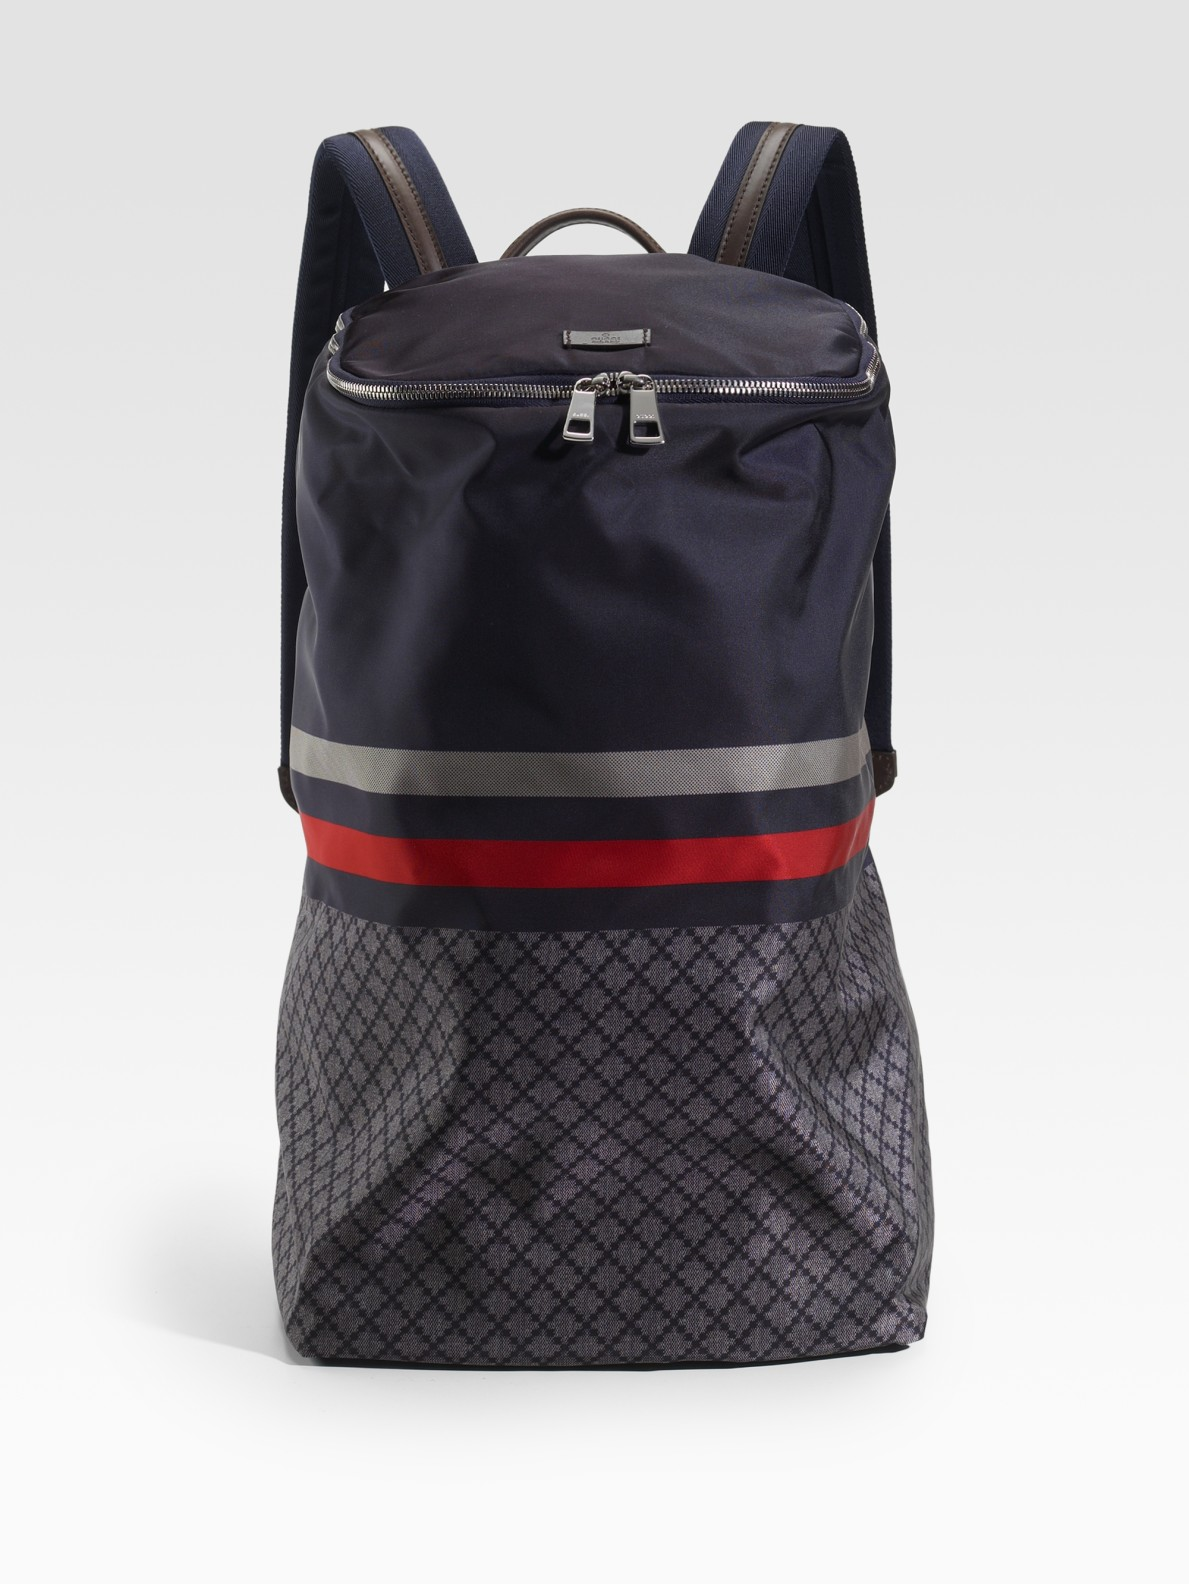 Gucci Nylon Diamante Backpack In Blue For Men Lyst